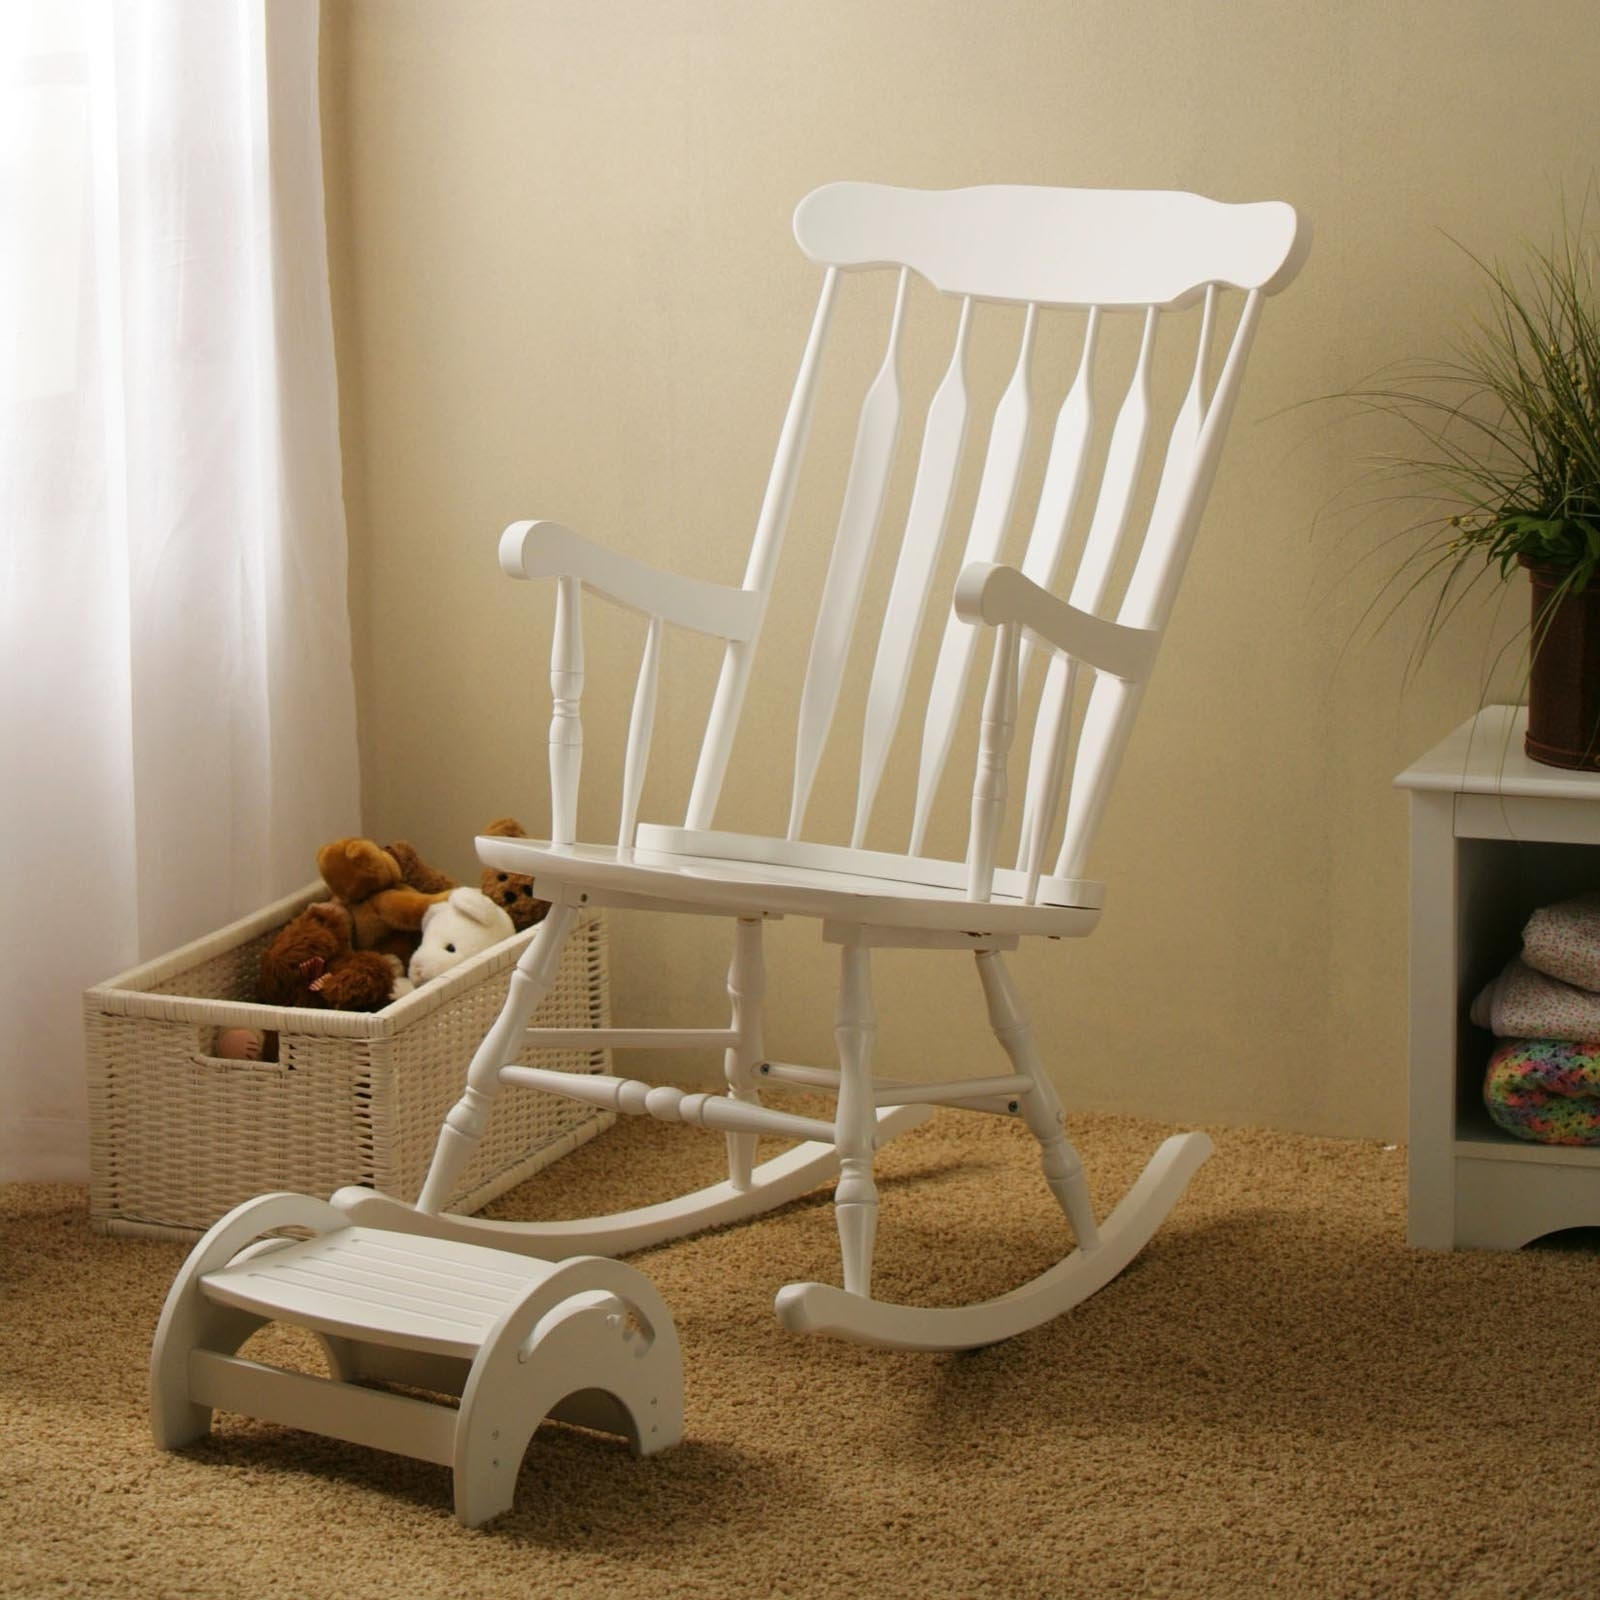 Indoor Wicker Rocking Chairs with Famous Furniture: Wicker Rocking Chair Design Ideas